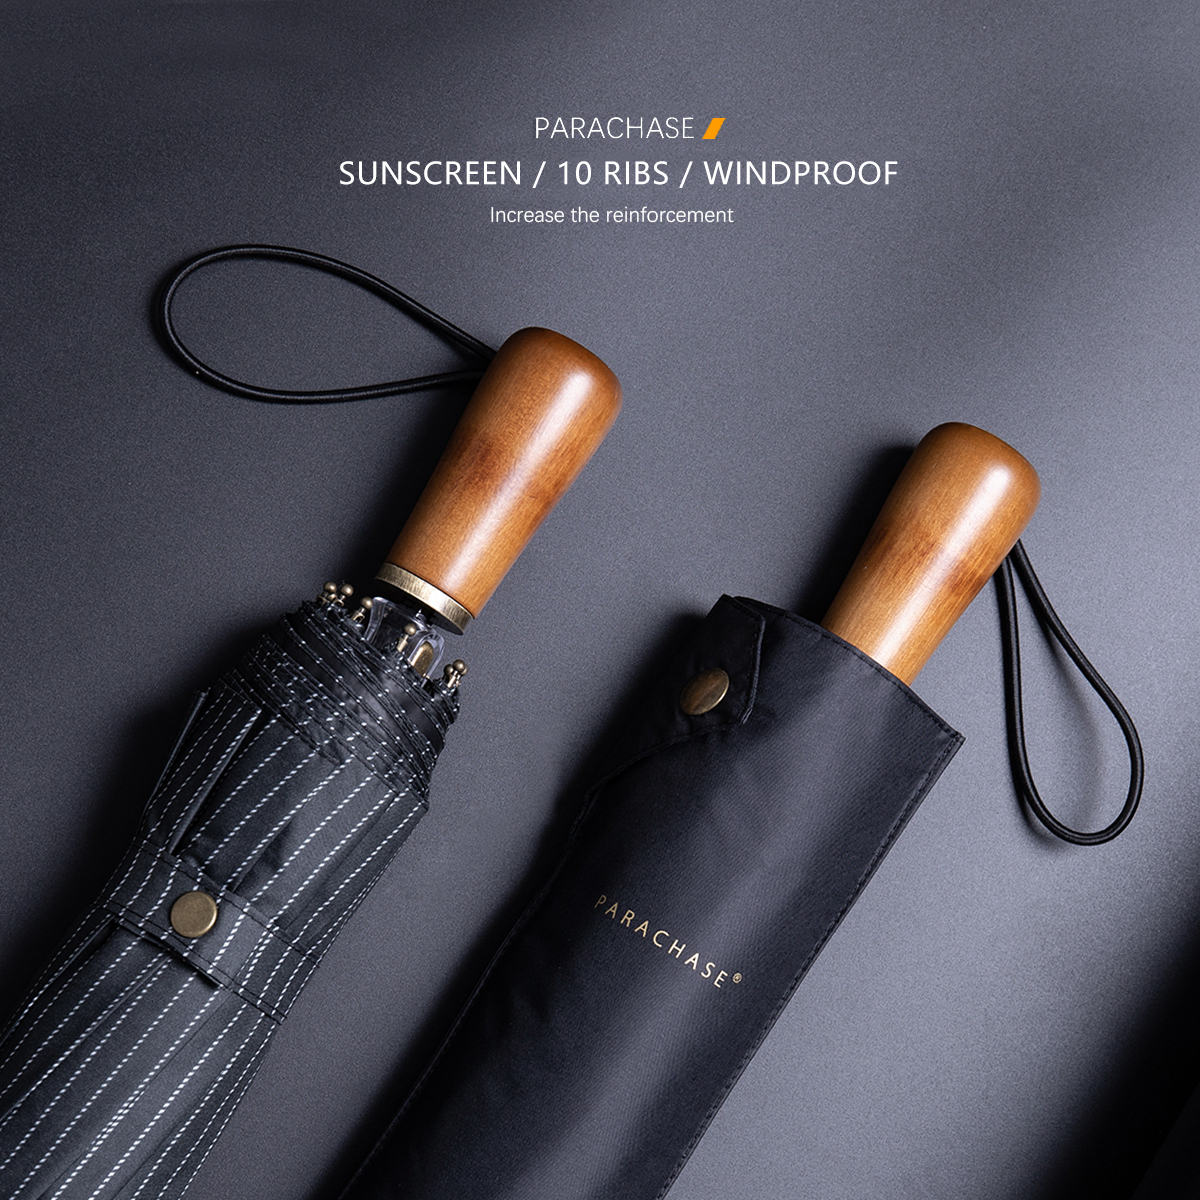 Wood Folding <font><b>Umbrella</b></font> Rain Men Women Anti UV 10 Ribs Windproof Japanese <font><b>Umbrella</b></font> Business Style <font><b>Big</b></font> <font><b>Golf</b></font> <font><b>Umbrellas</b></font> Guarda Chuva image